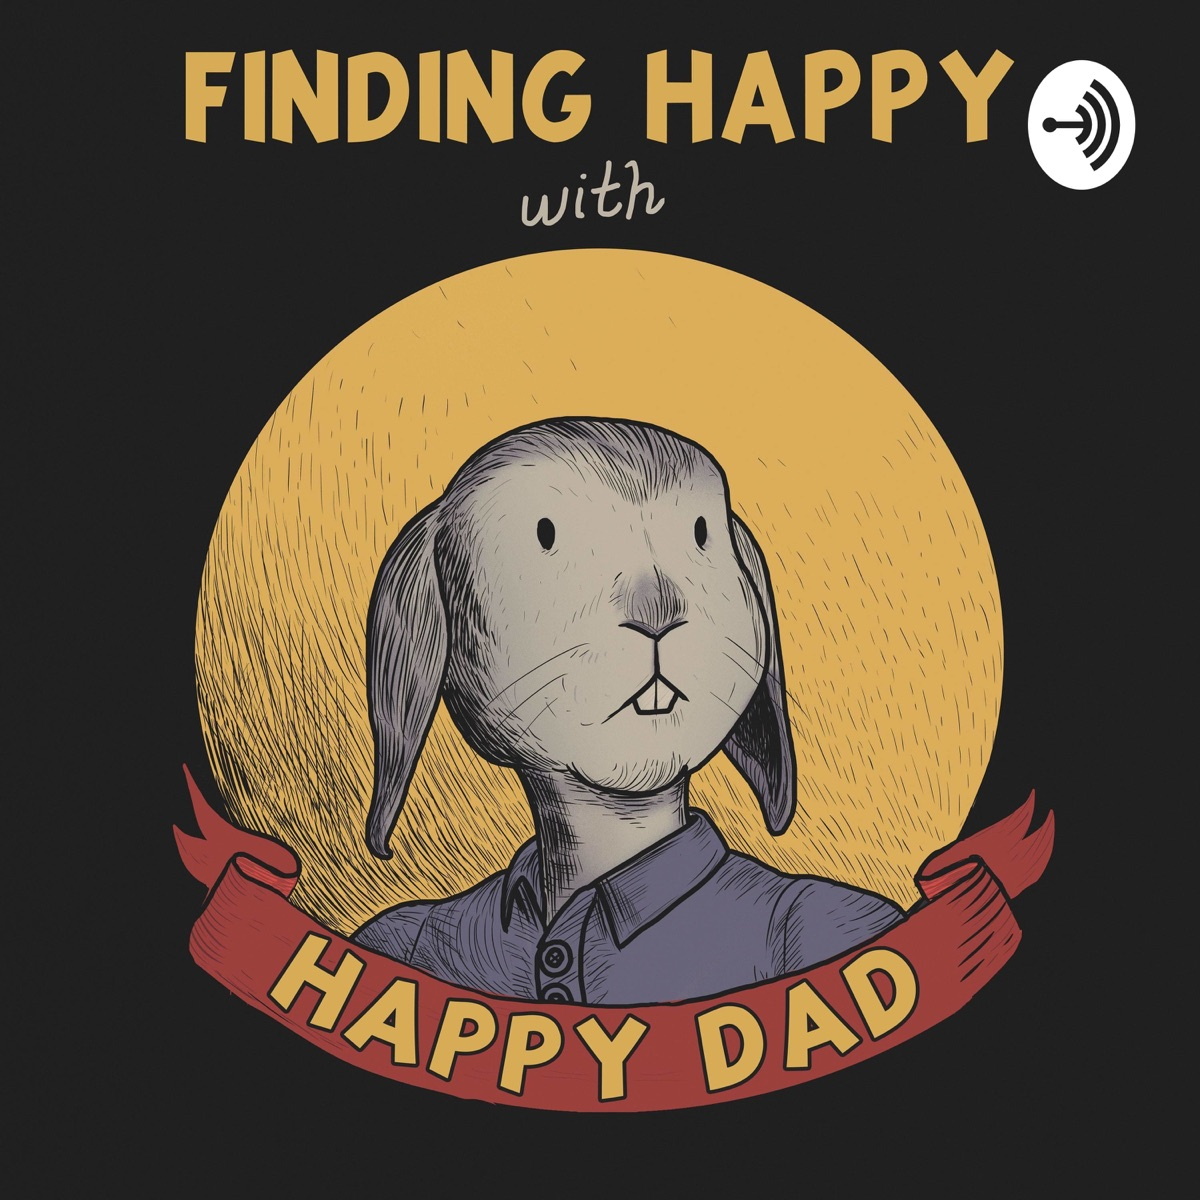 Finding Happy with Happy Dad